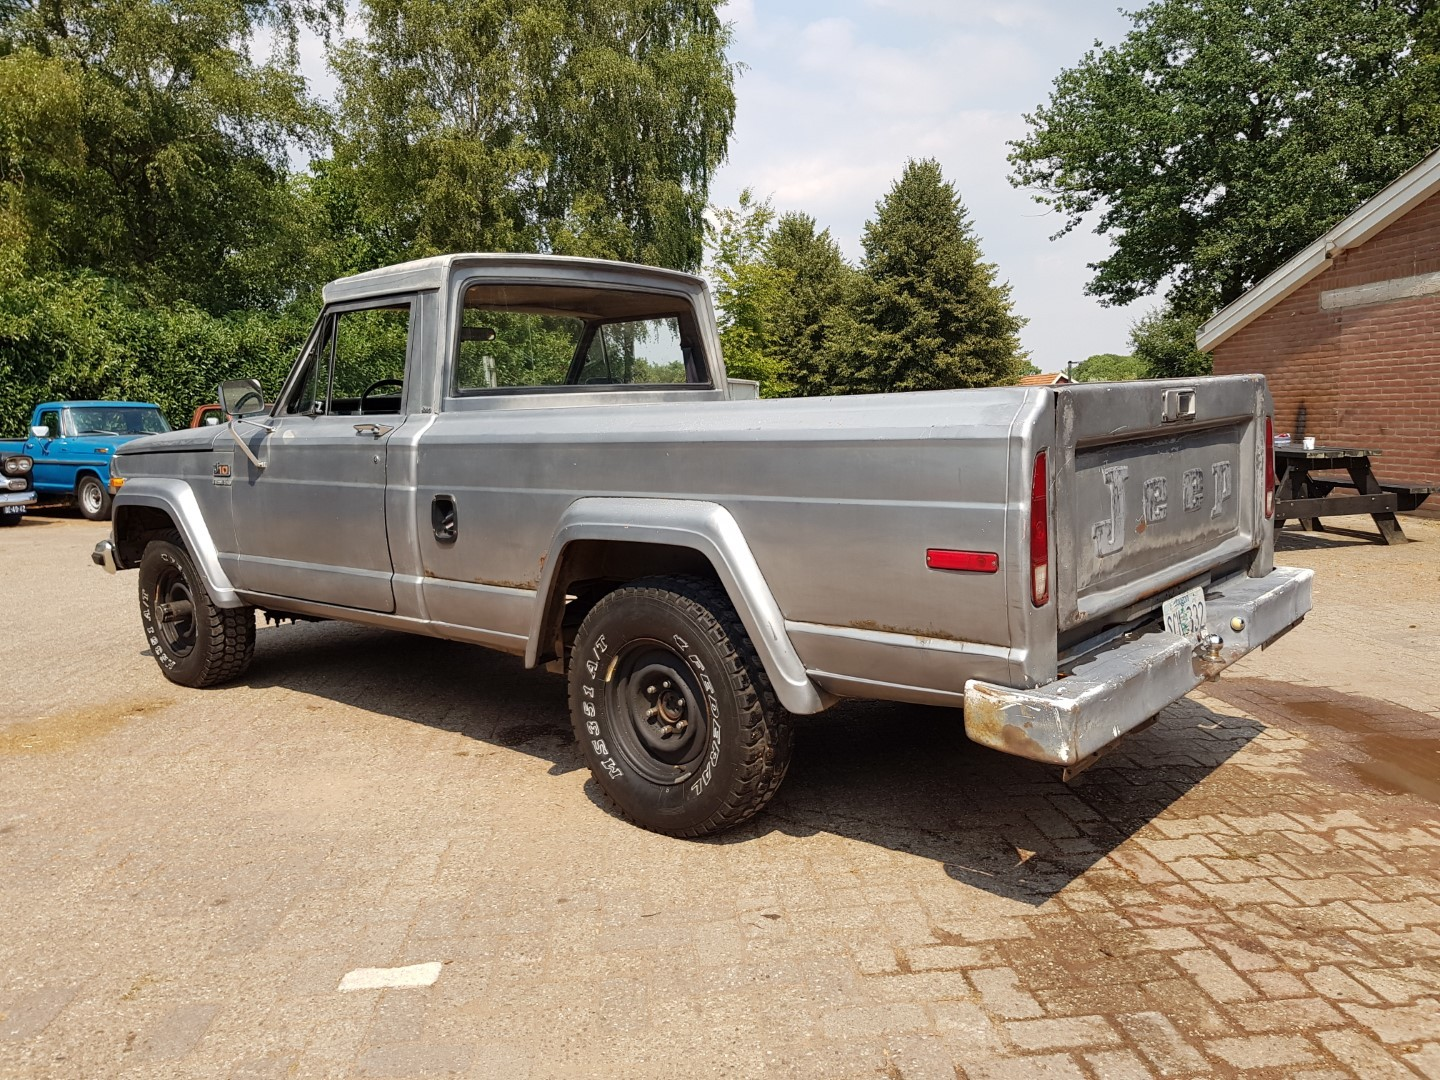 1978 Jeep J10 pickup 258ci (17)